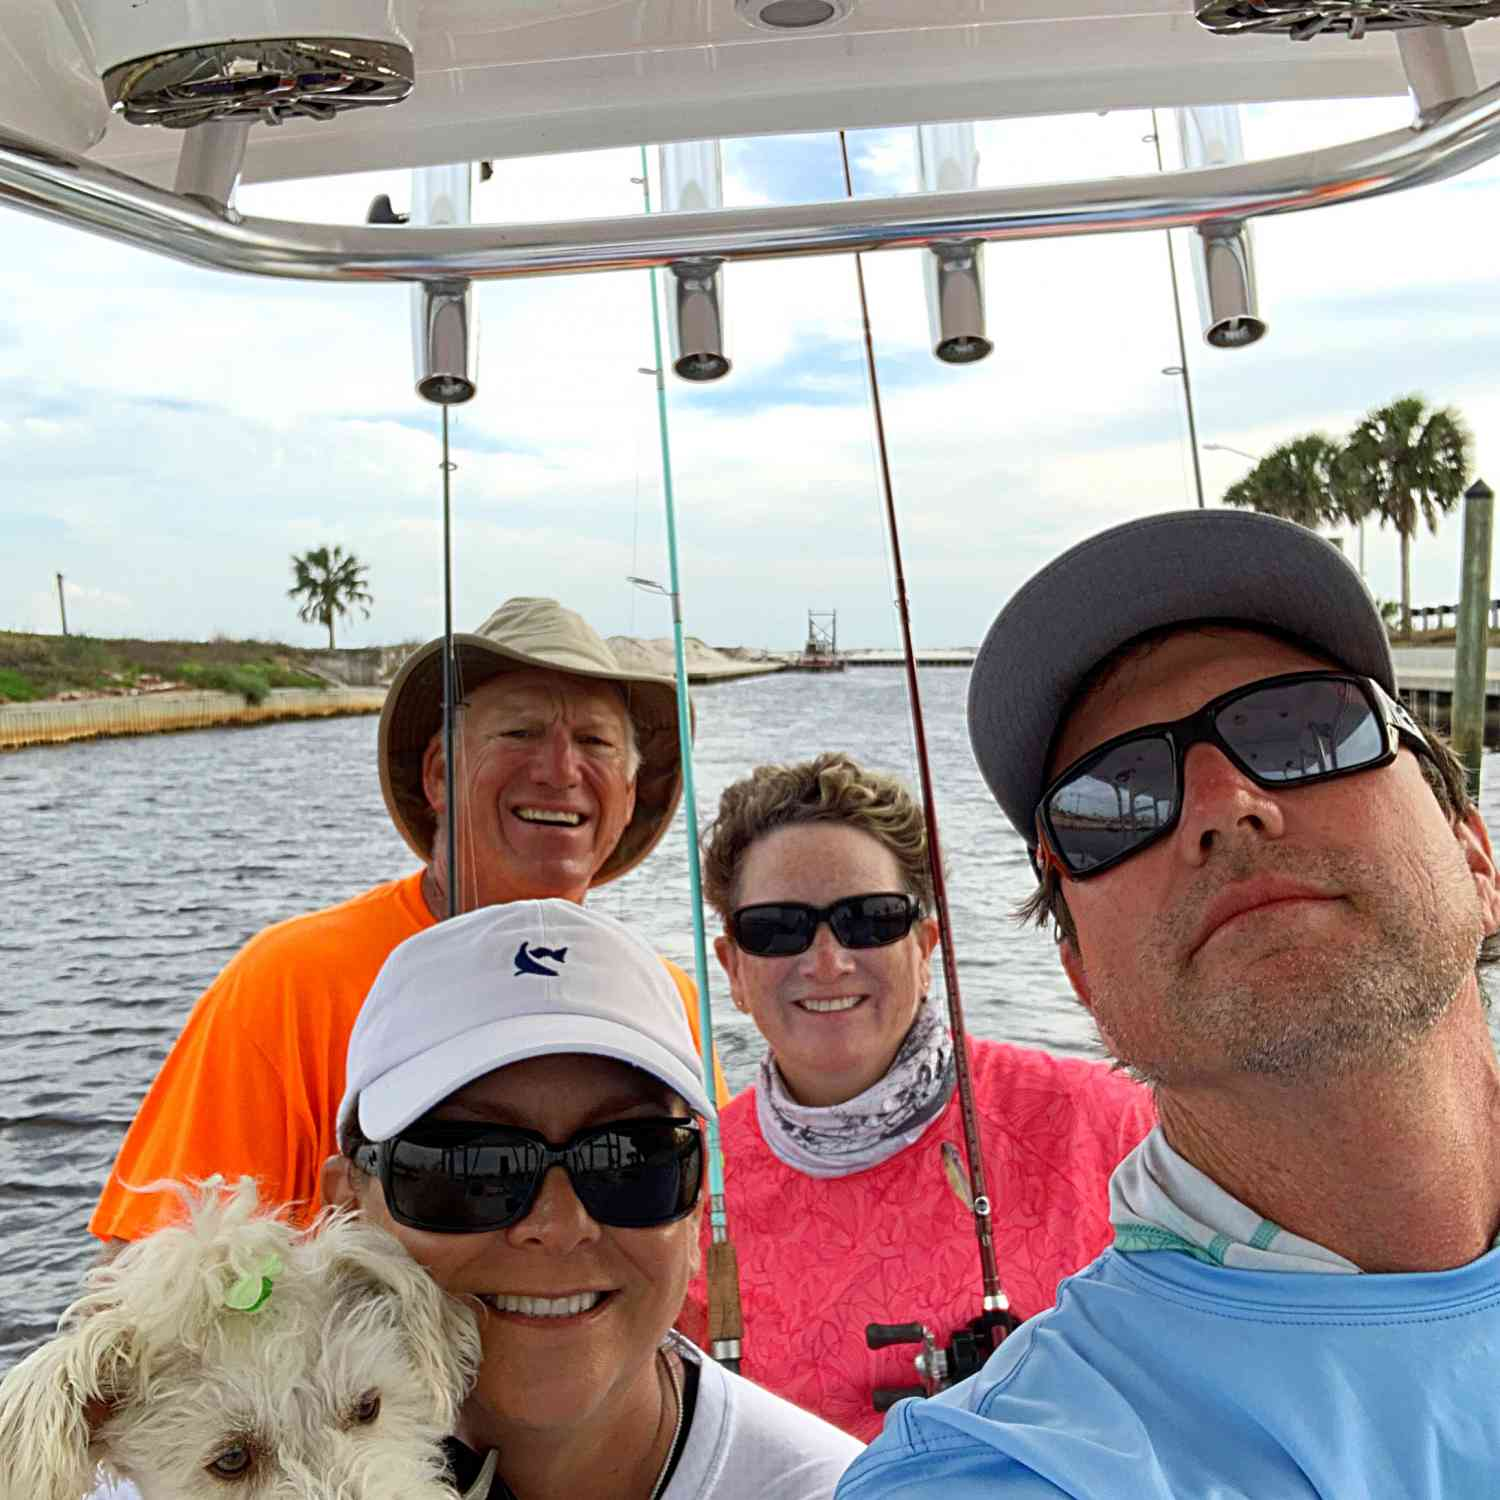 Title: Last Day away on the water! - On board their Sportsman Masters 247 Bay Boat - Location: Mexico Beach, FL. Participating in the Photo Contest #SportsmanApril2020